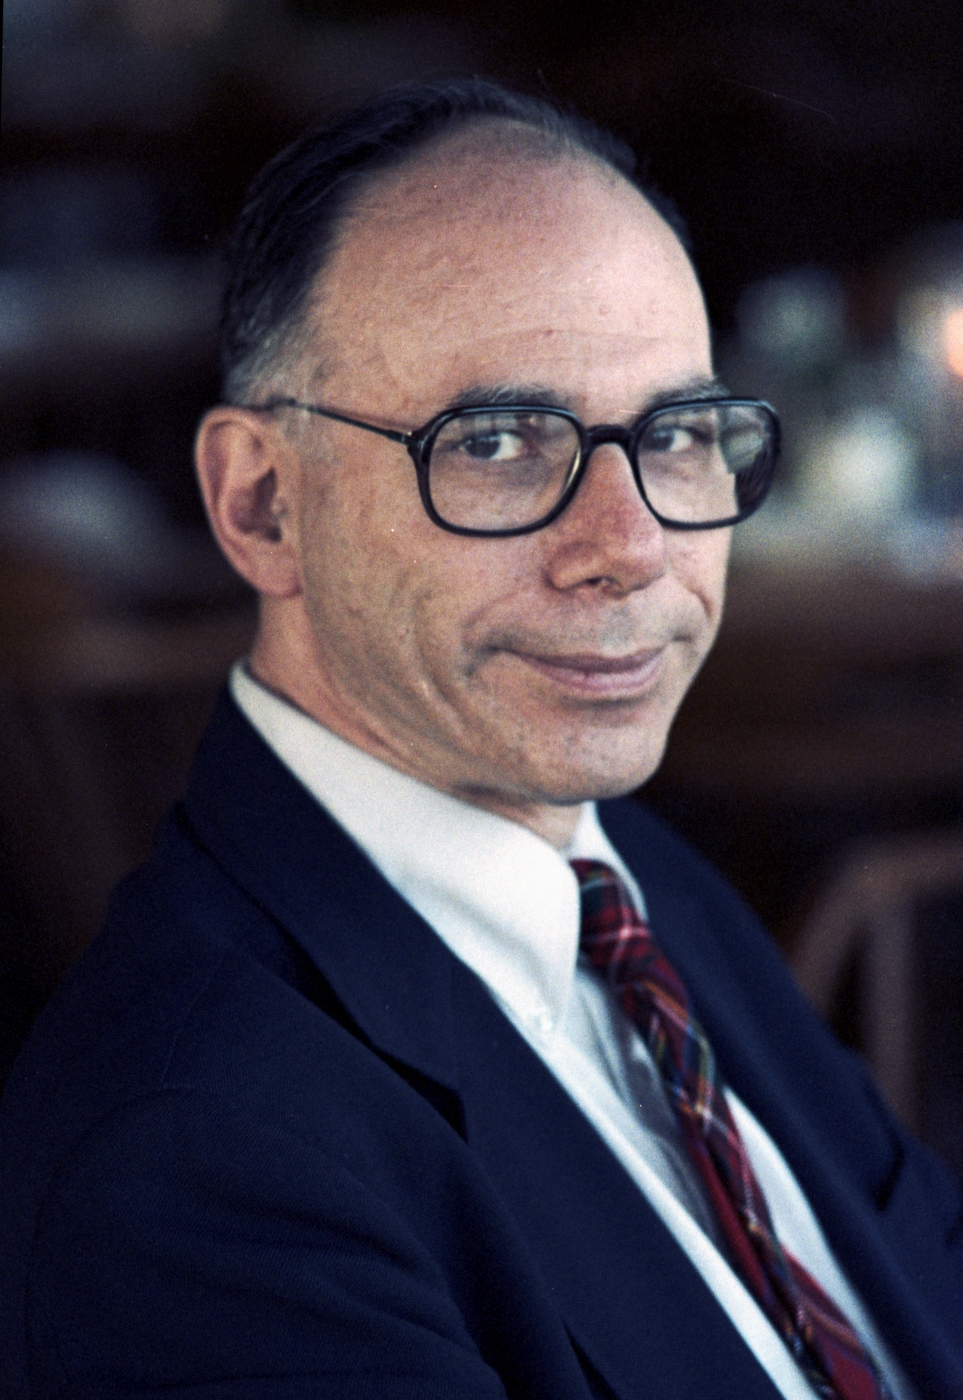 Marshall Edelson, Psychoanalyst, Professor of Psychiatry, Author